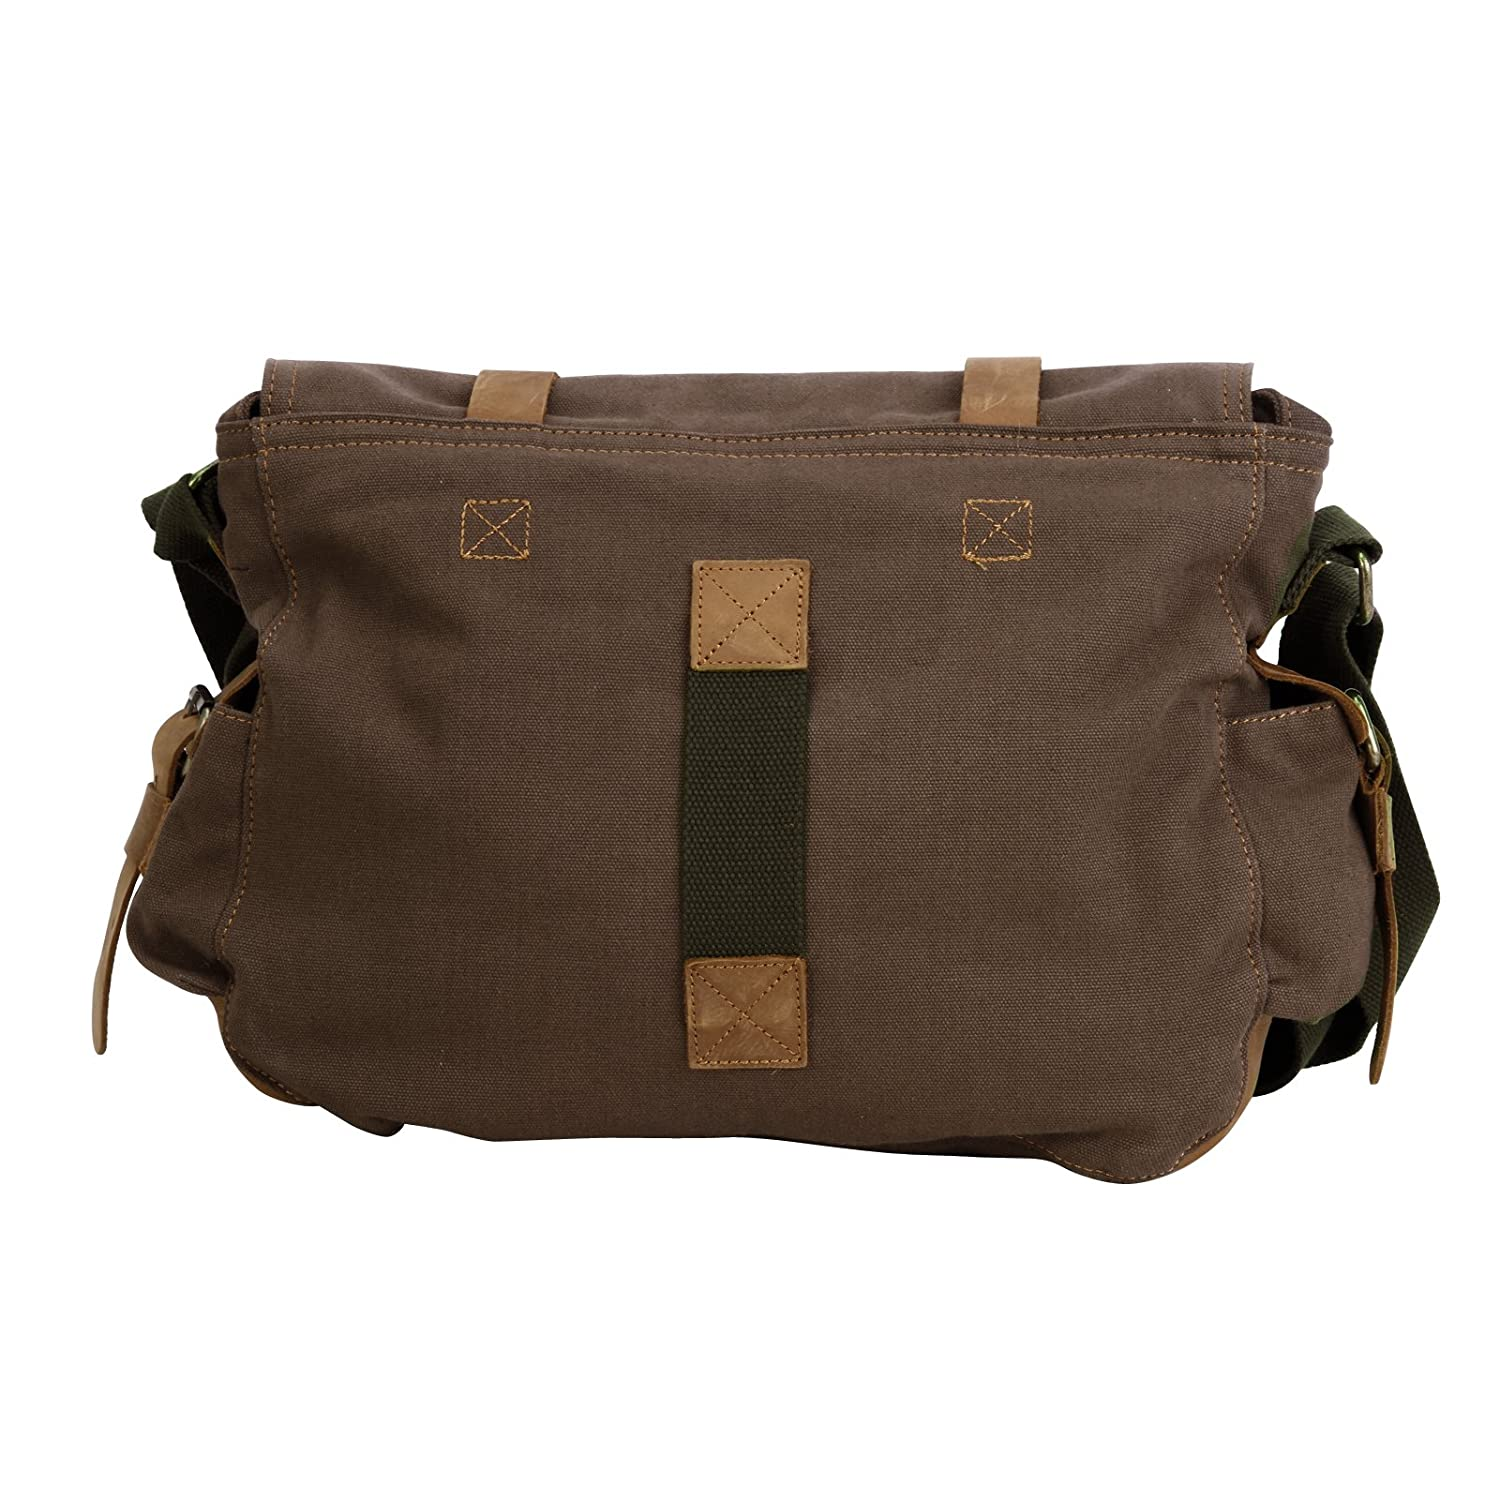 a34a391318b Amazon.com  Men s Vintage Canvas Leather Satchel School Army Shoulder Bag  Messenger Bag  Computers   Accessories